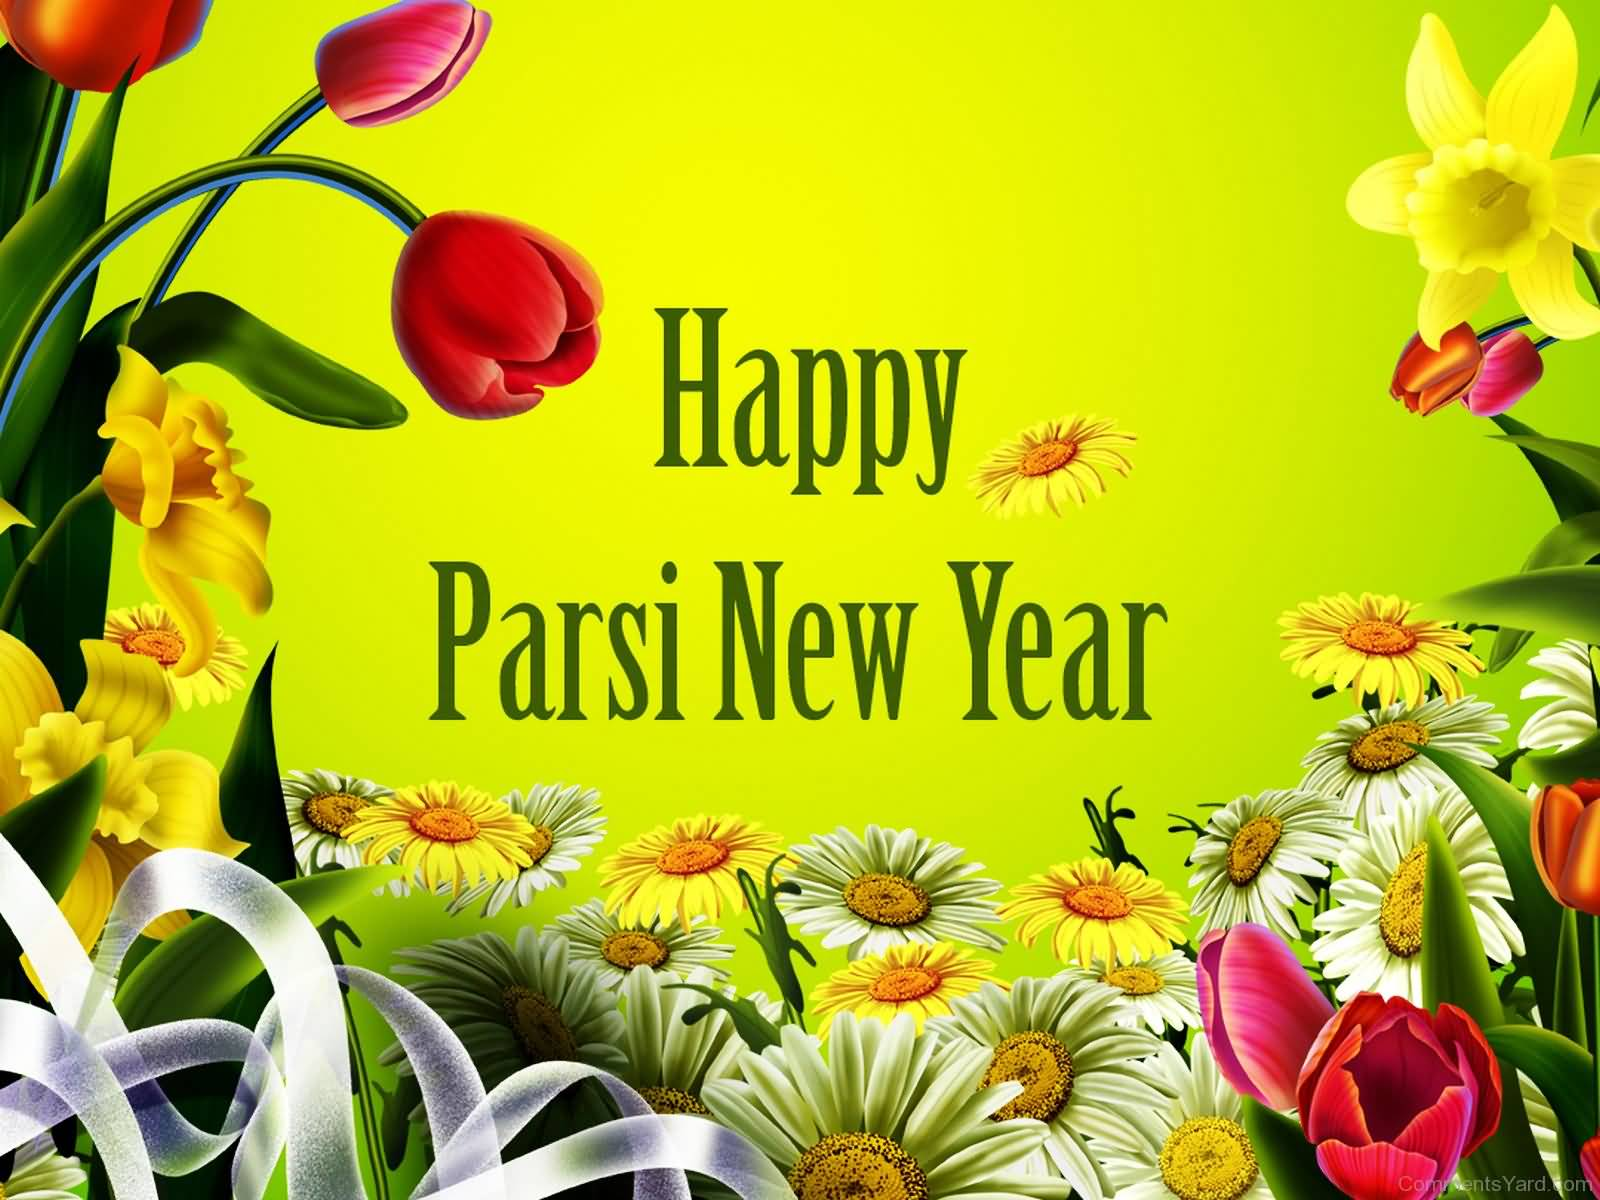 50 best happy nowruz 2017 wish pictures and images happy parsi new year nawroz greeting card kristyandbryce Gallery